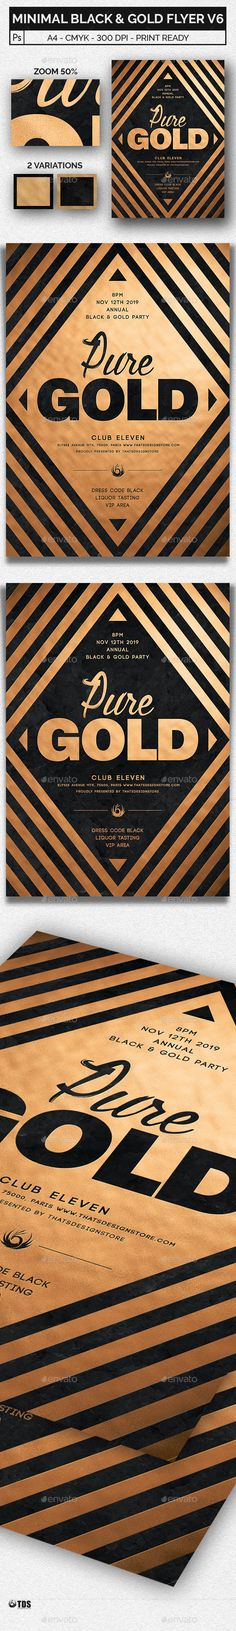 Minimal Black and Gold Flyer Template V6 — Photoshop PSD #black #music • Download ➝ https://graphicriver.net/item/minimal-black-and-gold-flyer-template-v6/20480685?ref=pxcr